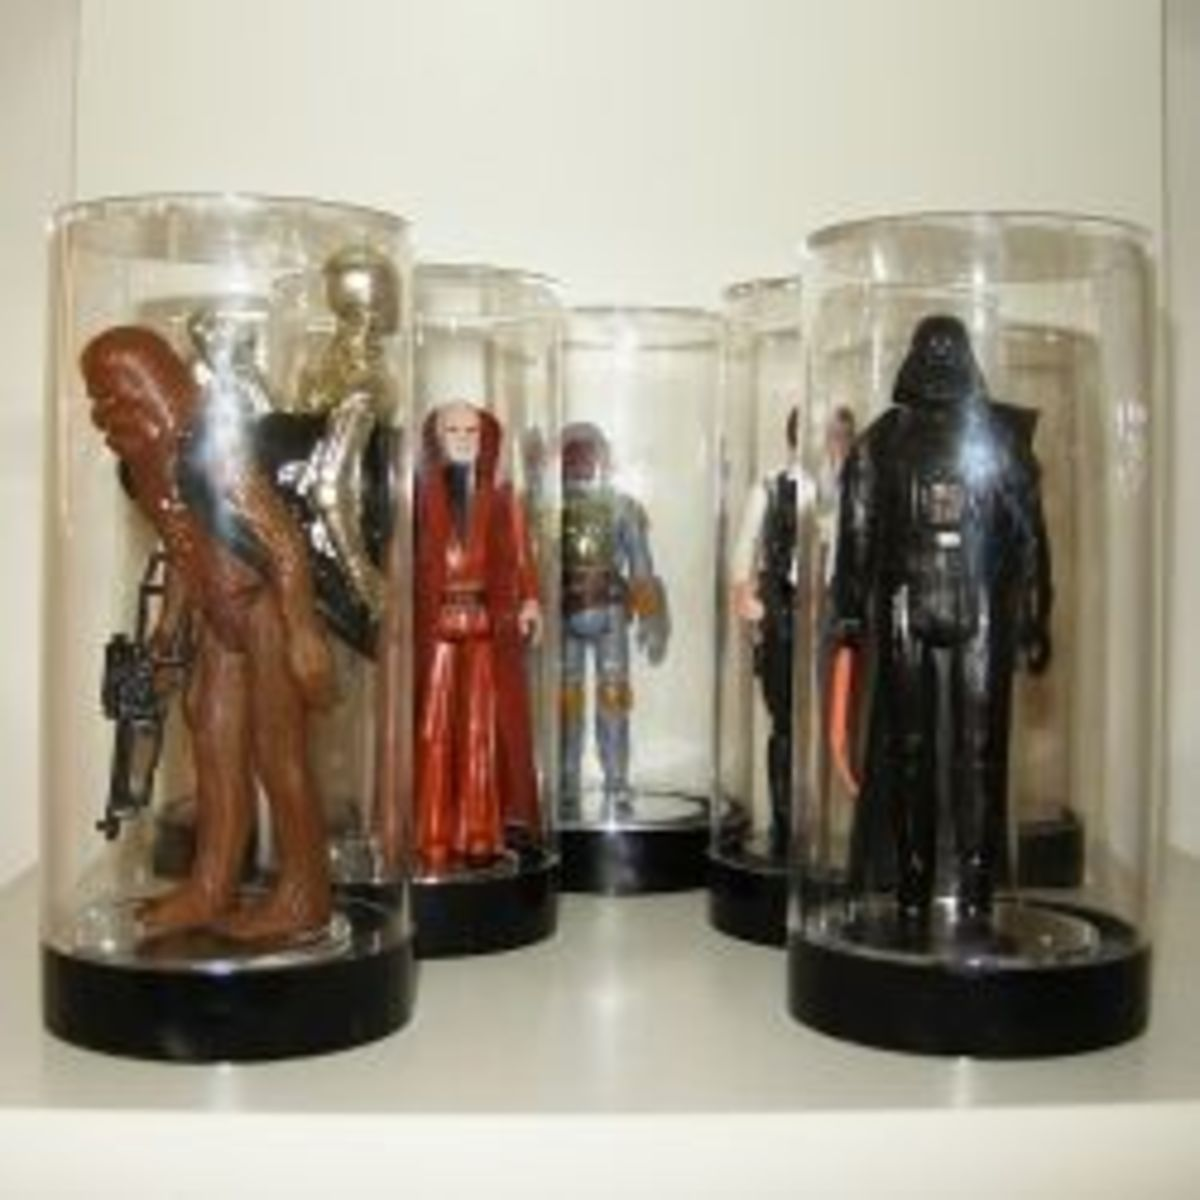 The storage and display of vintage action figures